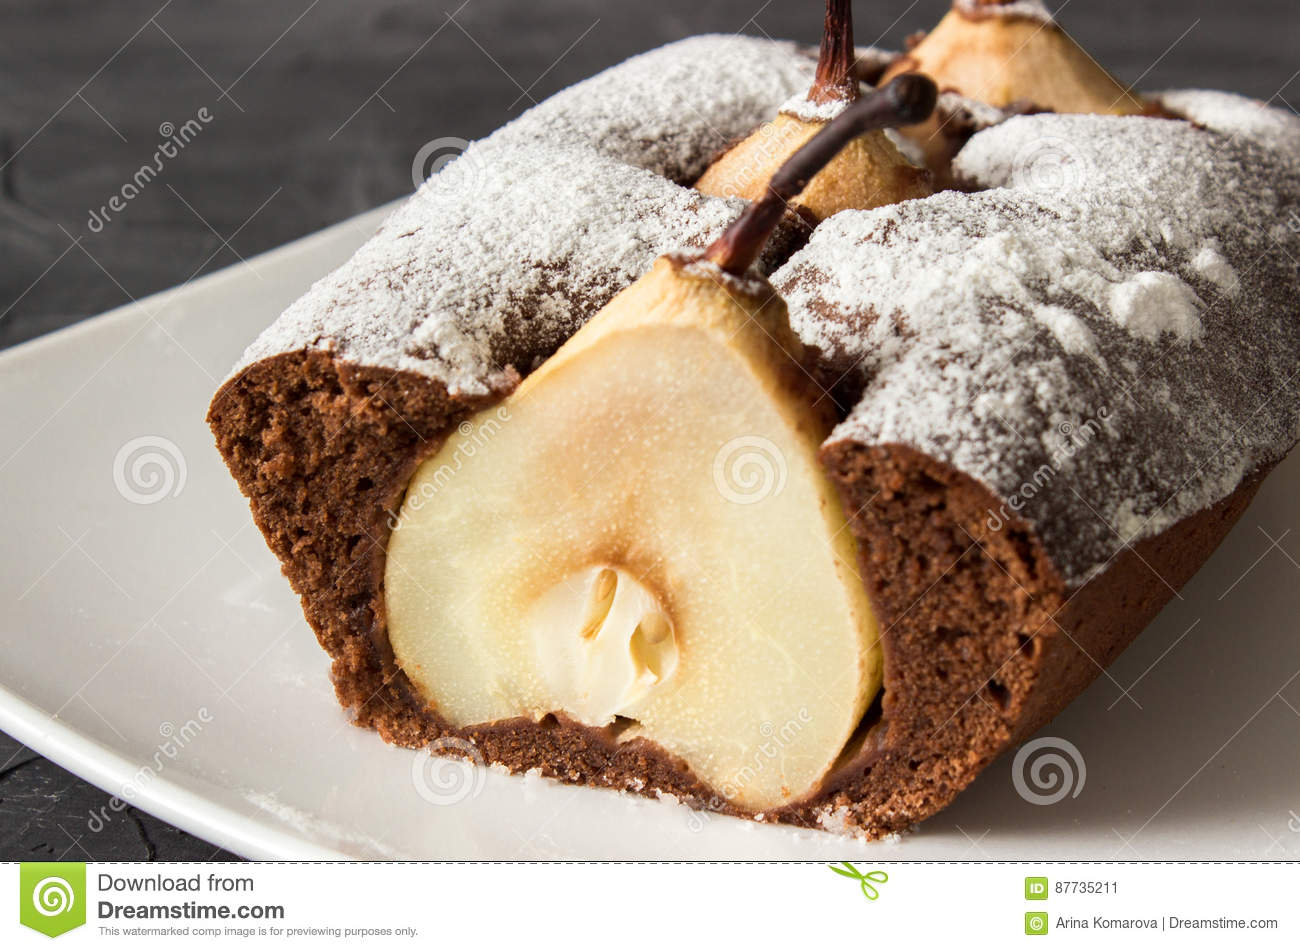 Make Chocolate Pear Sponge Cake